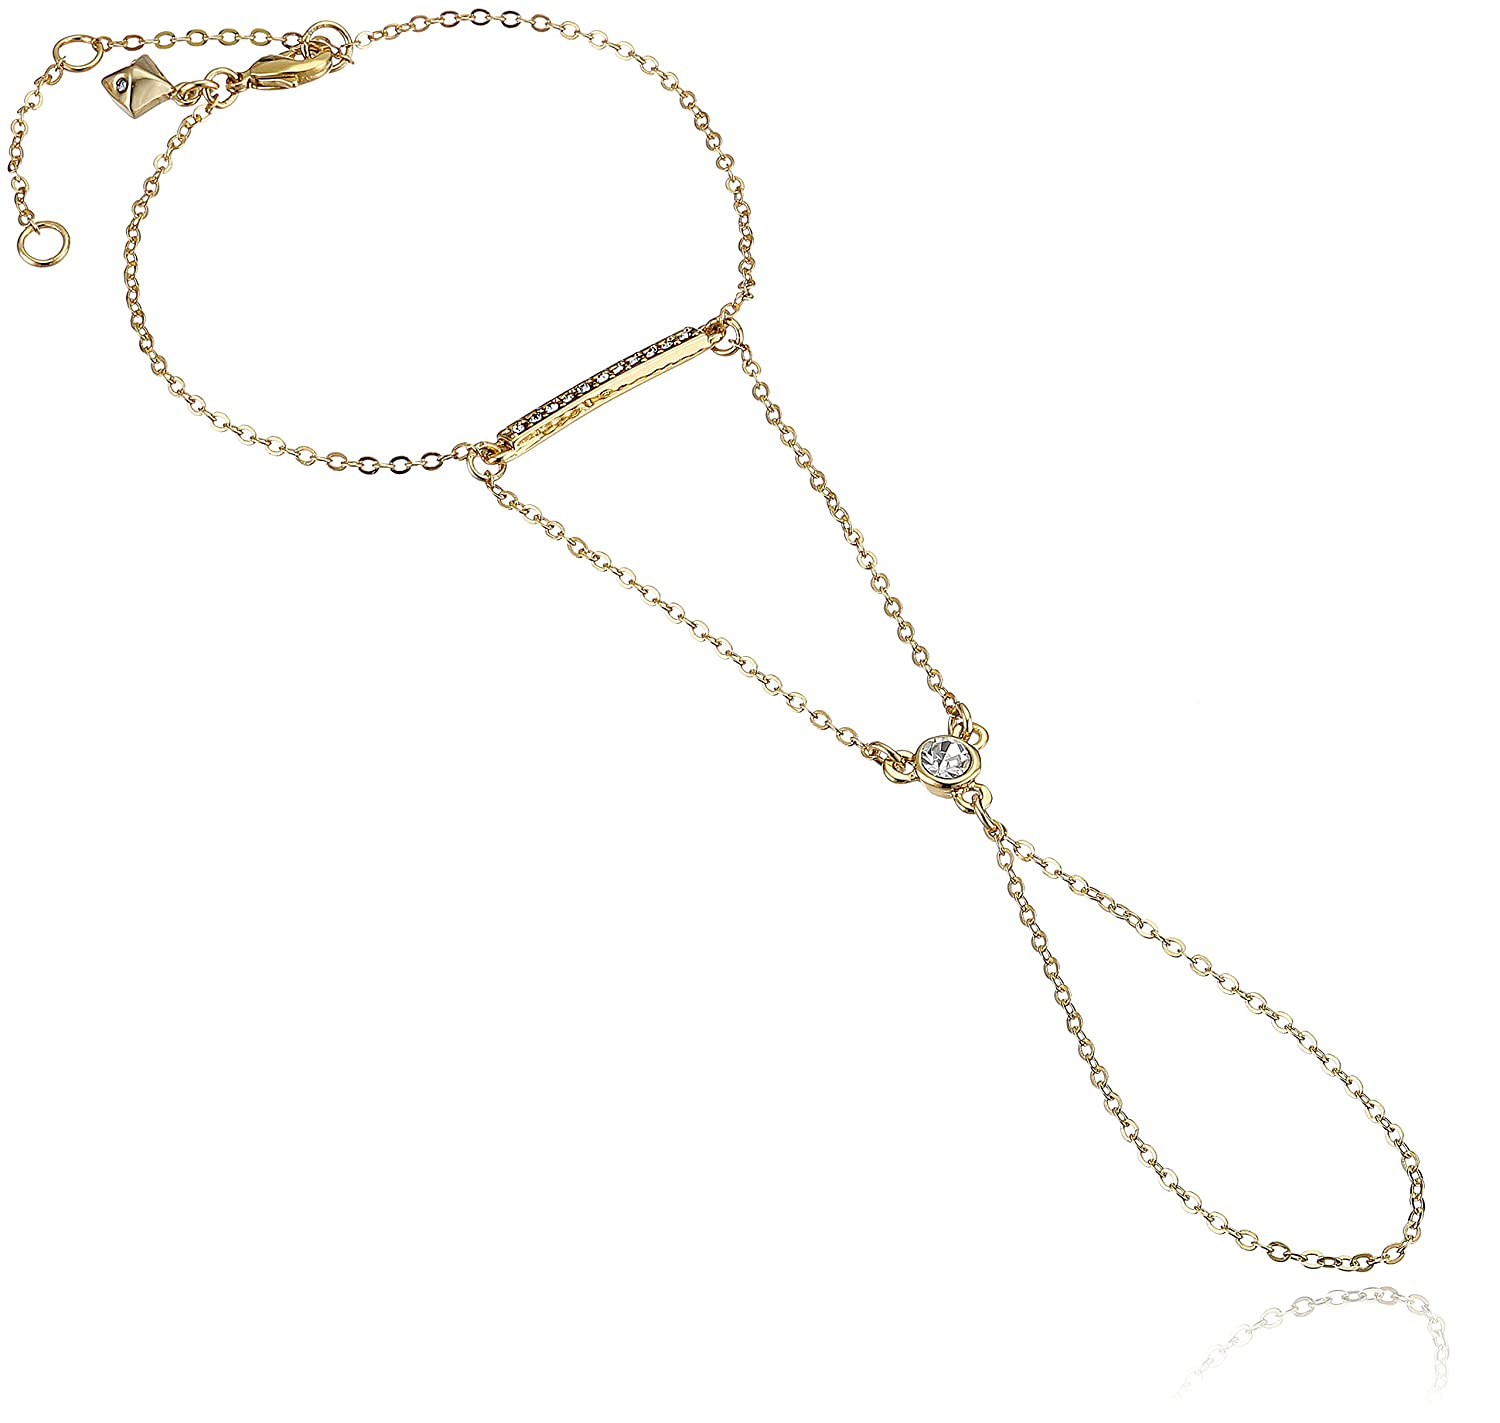 Rebecca Minkoff Core Gold Crystal Hand Chain Body Jewelry, 6.5 + 2 Extender 6.5 + 2 Extender Rebecca Minkoff Jewelry 501579RM